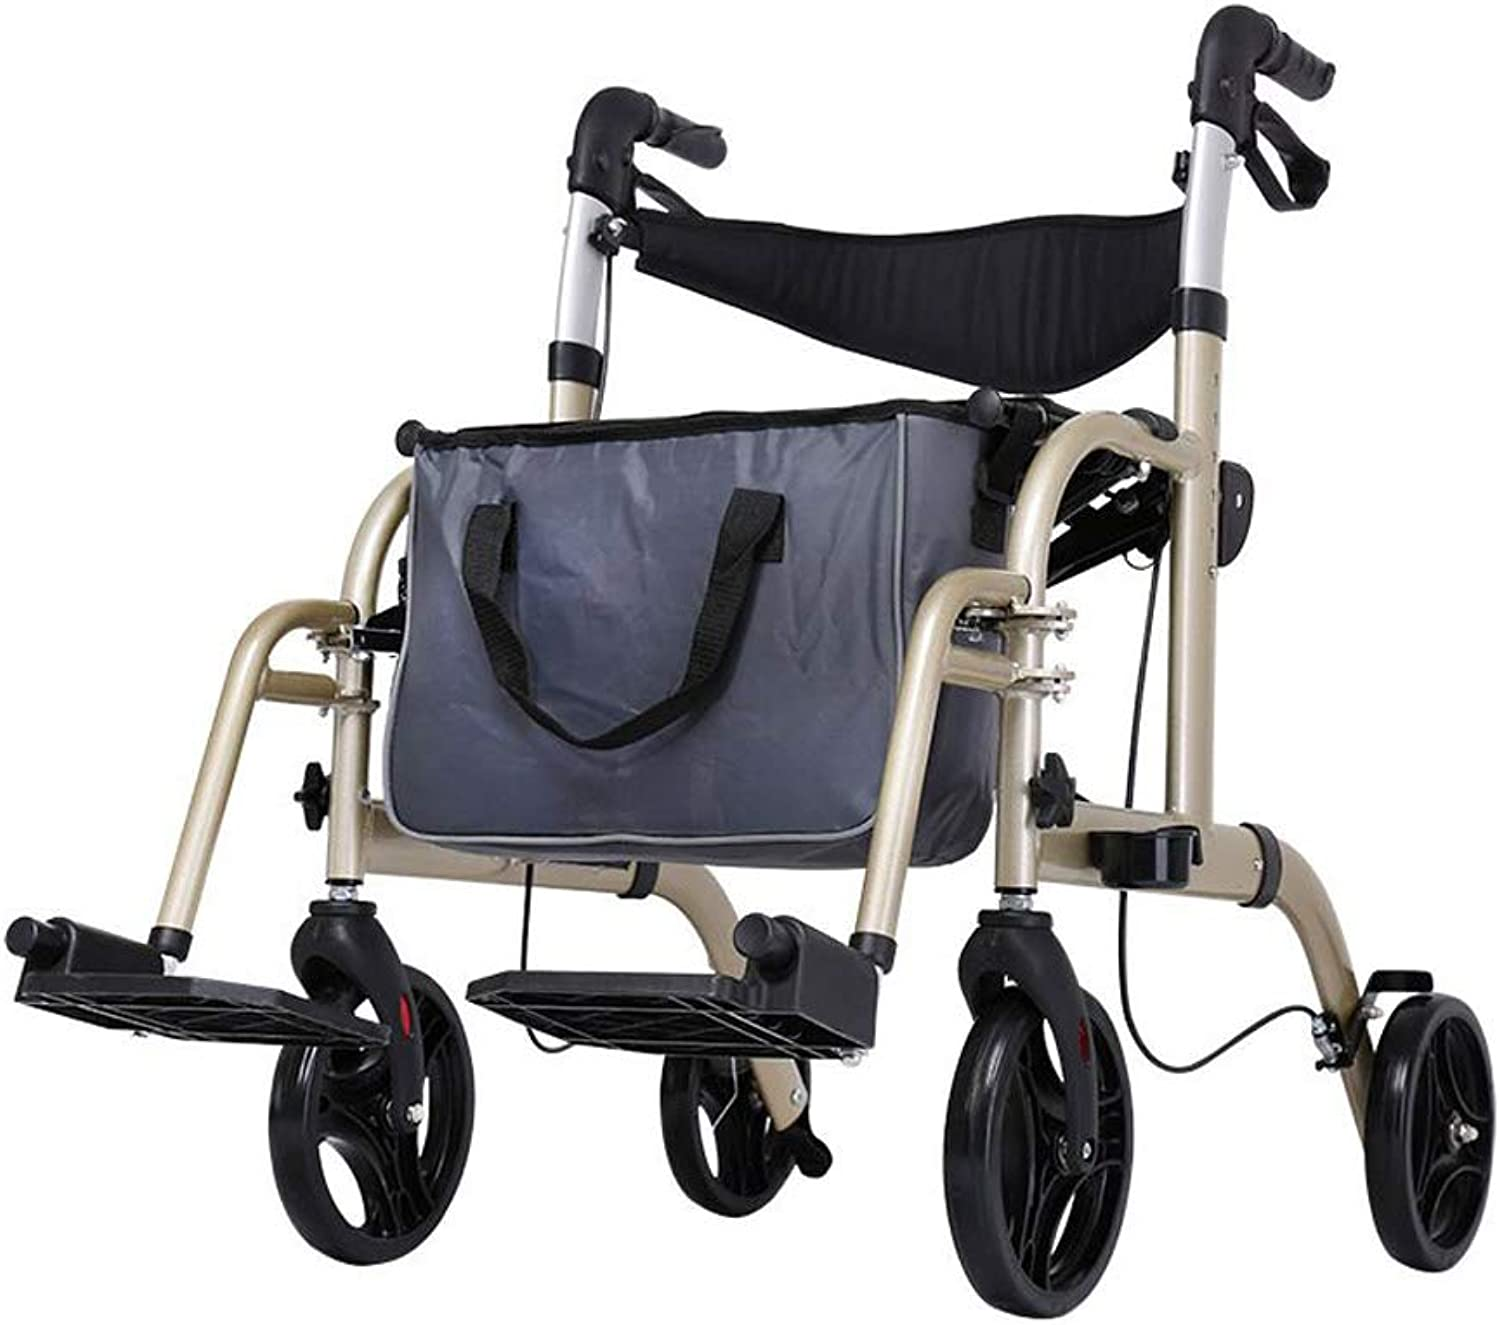 Walker, Simple Wheelchair, Aluminum Alloy Old Cart Scooter Old Shopping Cart with Wheel and Seat Assisted walking (color   B)